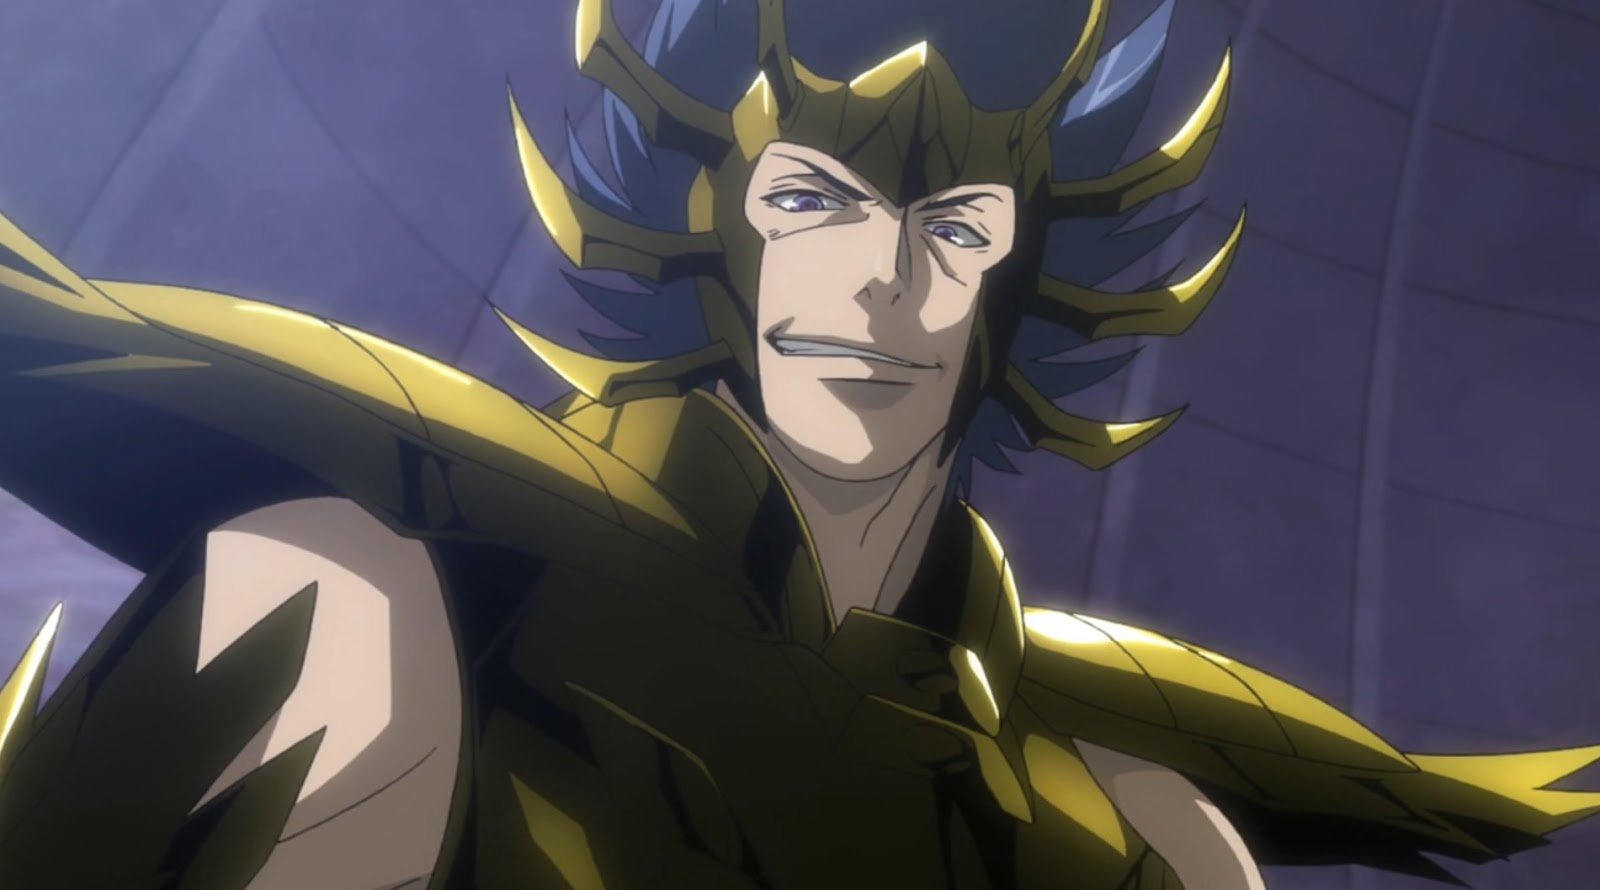 Saint Seiya: The Lost Canvas Episodio 16 Dublado